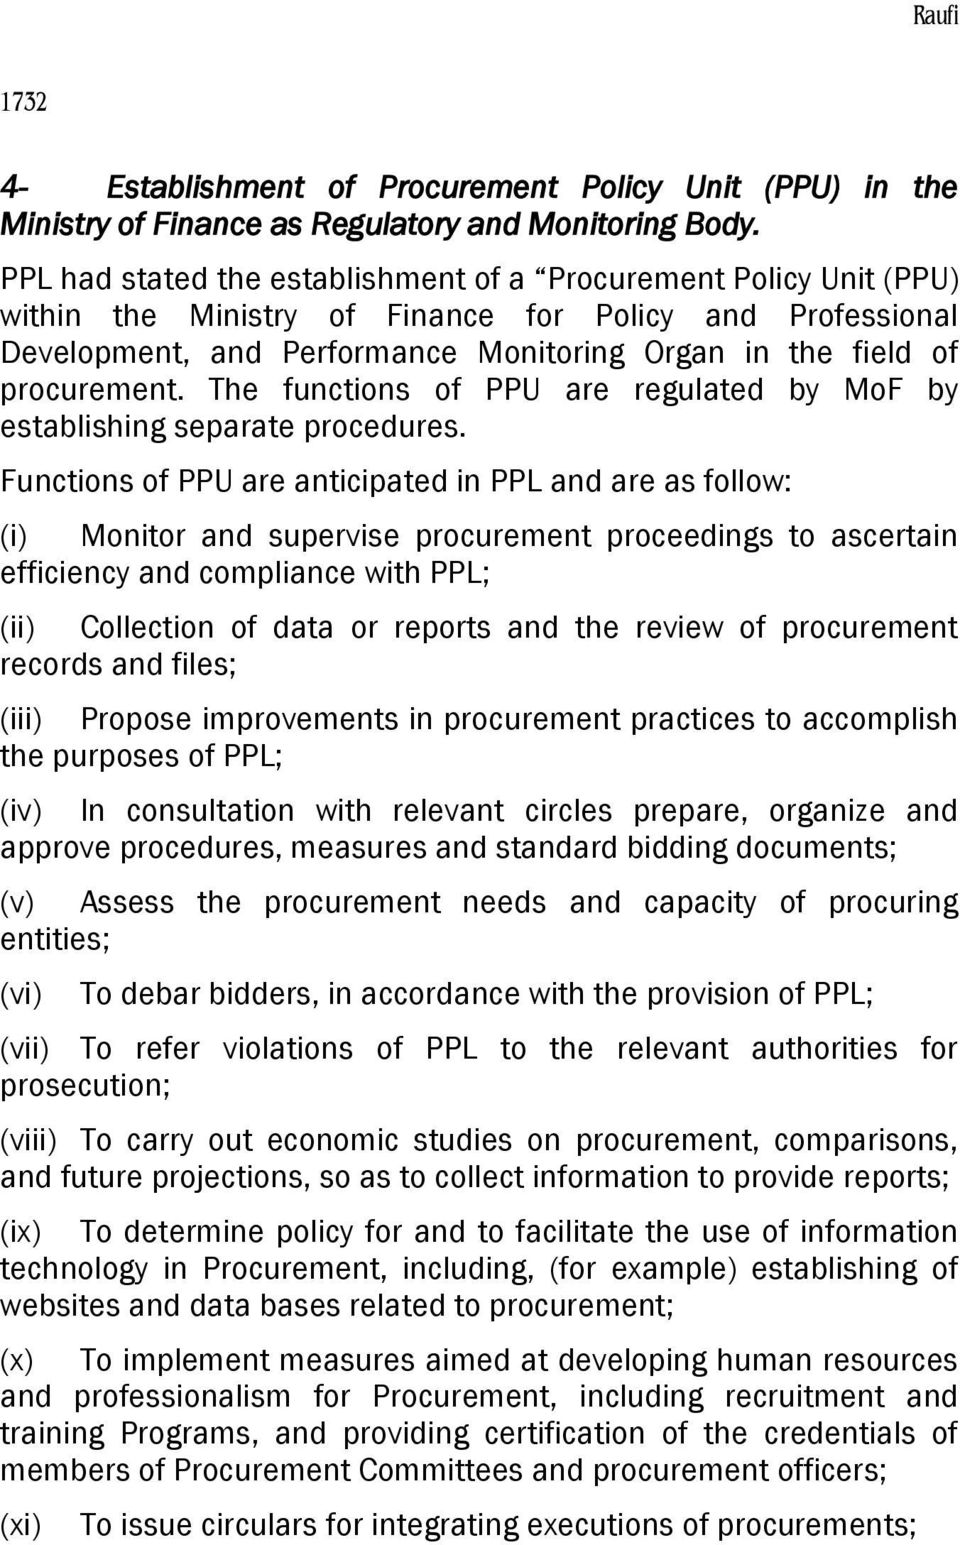 procurement. The functions of PPU are regulated by MoF by establishing separate procedures.